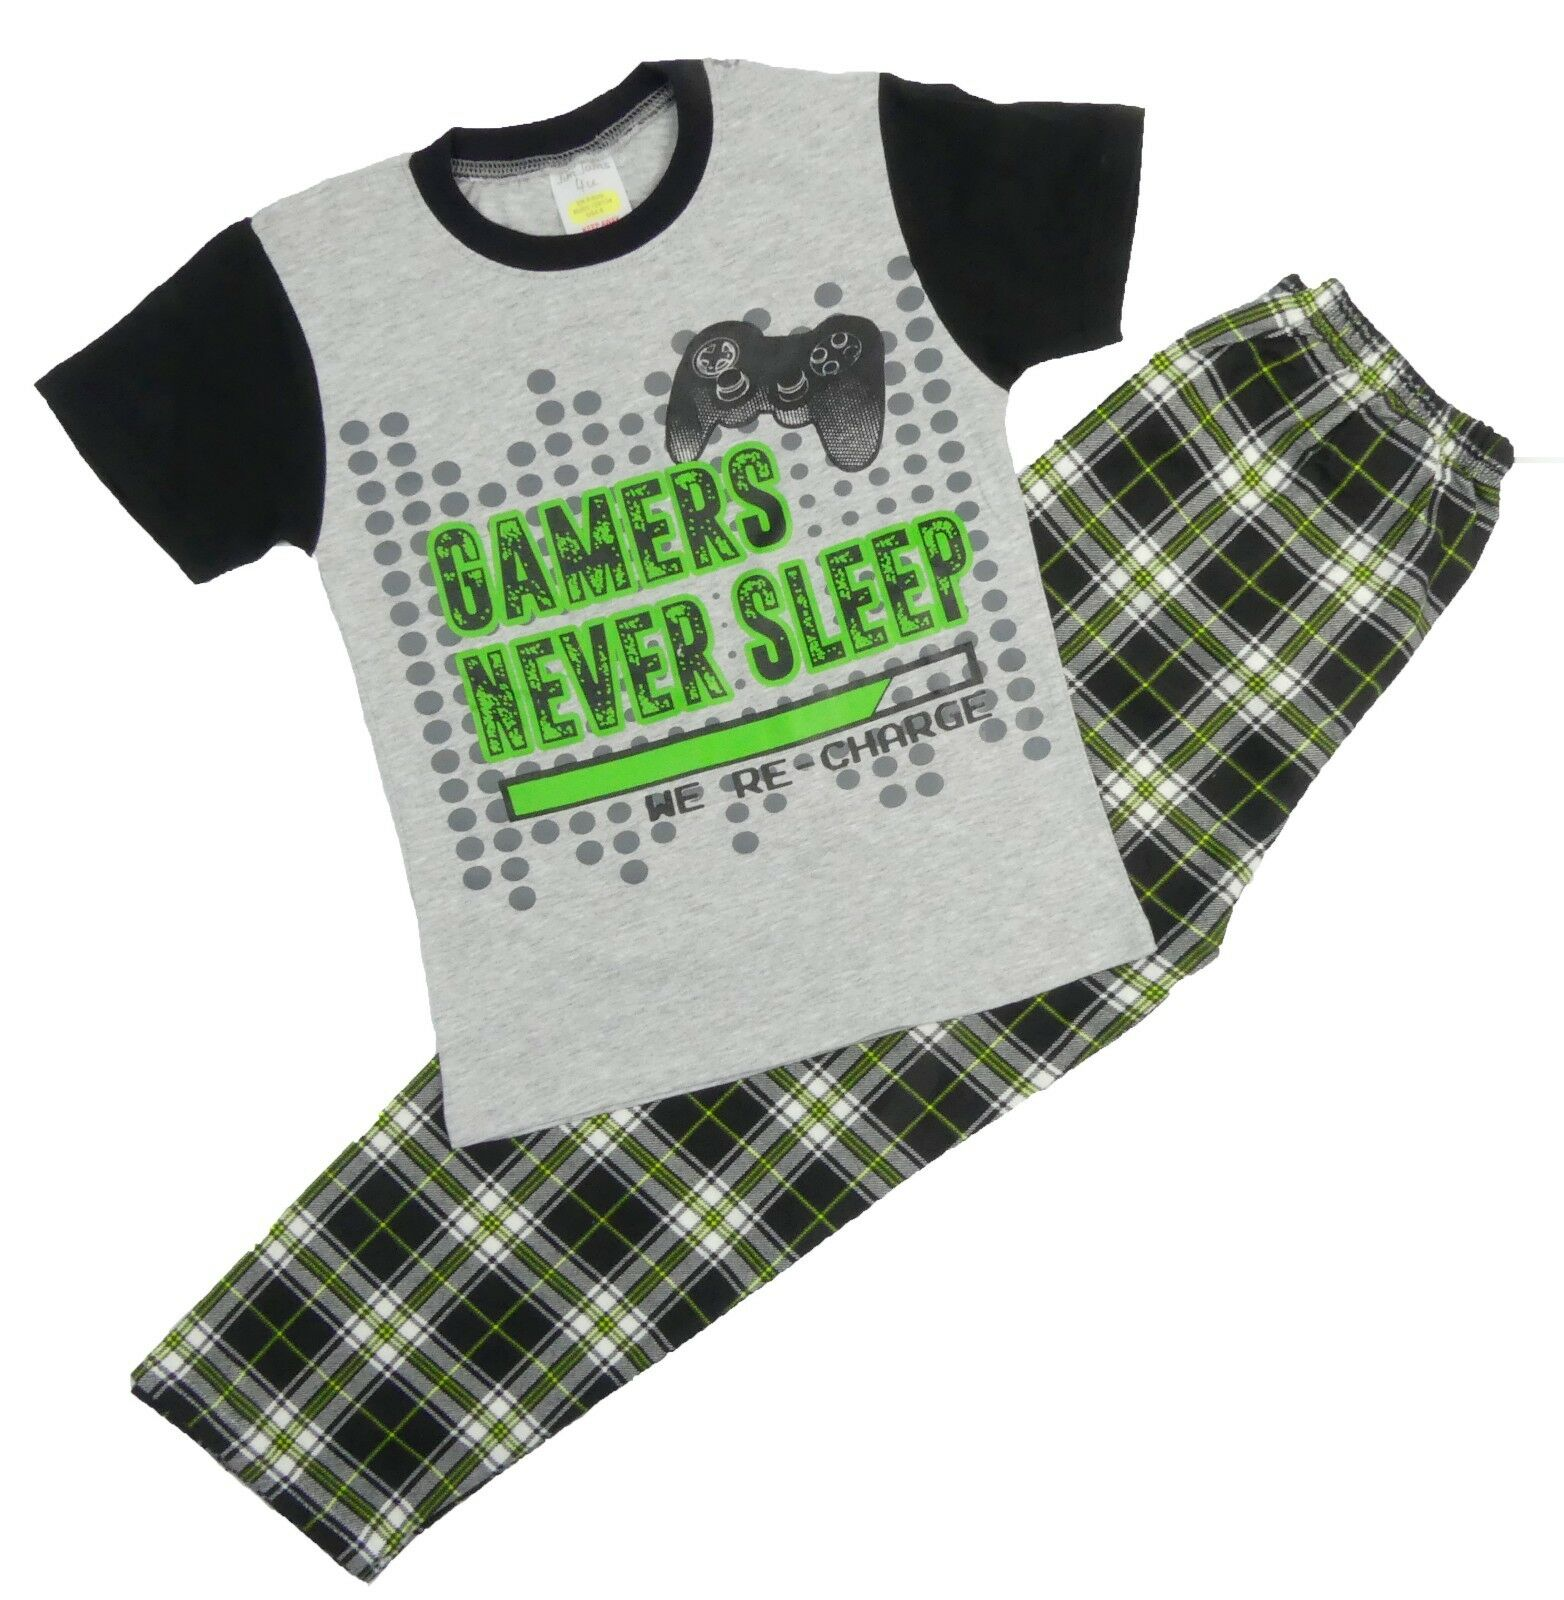 Boys Pyjamas Gamers Pyjamas Three Great Designs 7-13 Years Long and Short